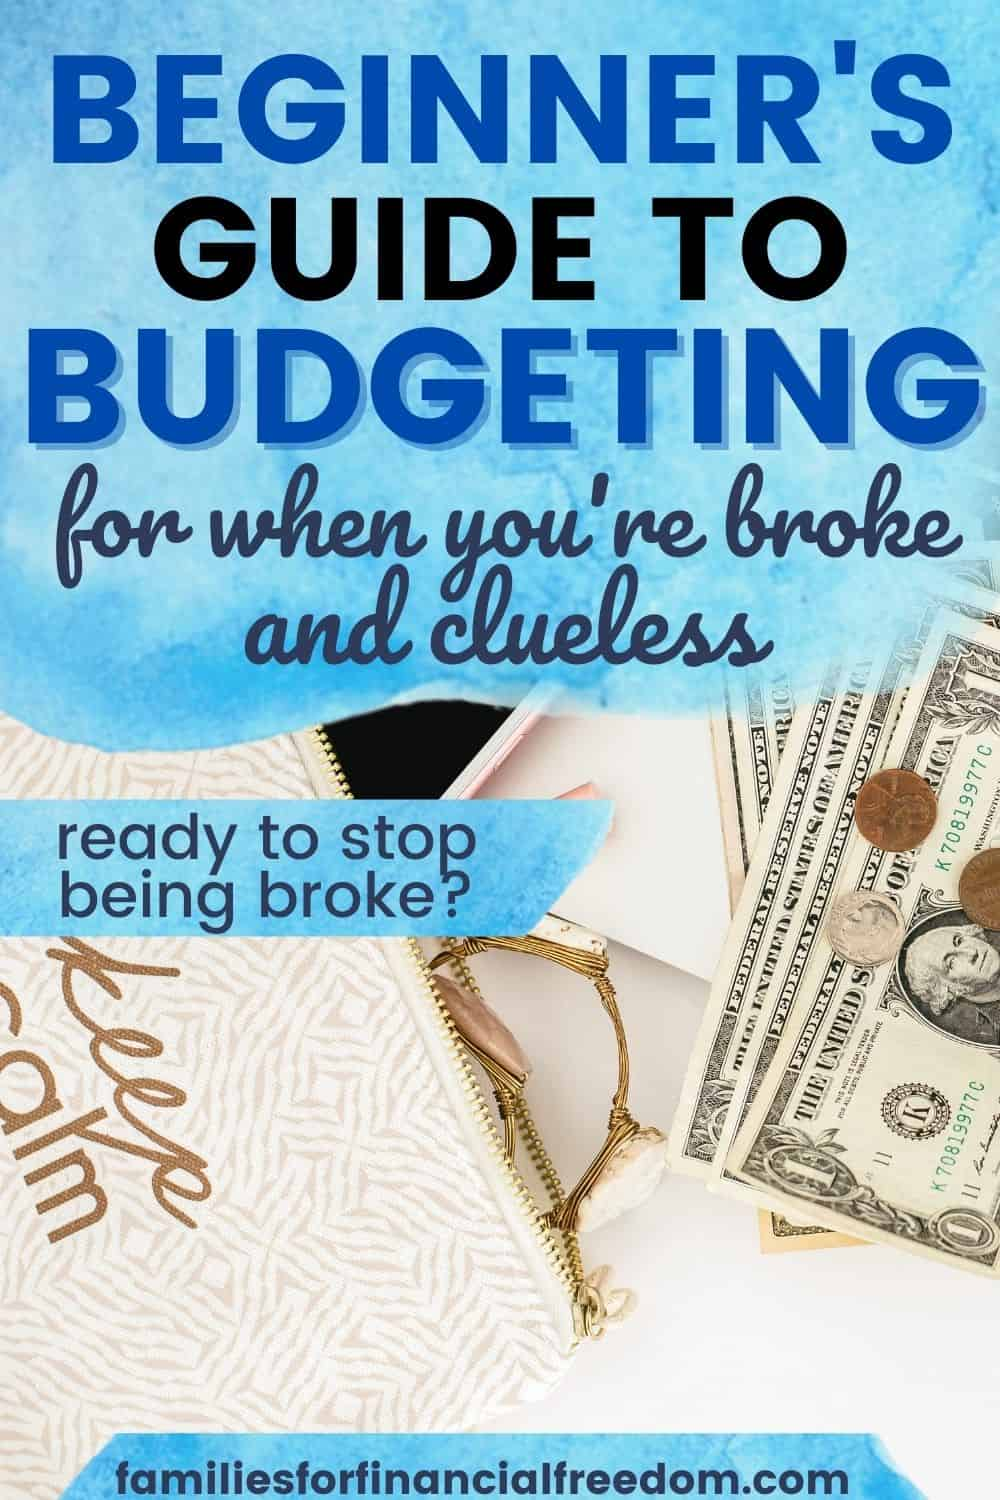 beginner's guide to budgeting how to budget